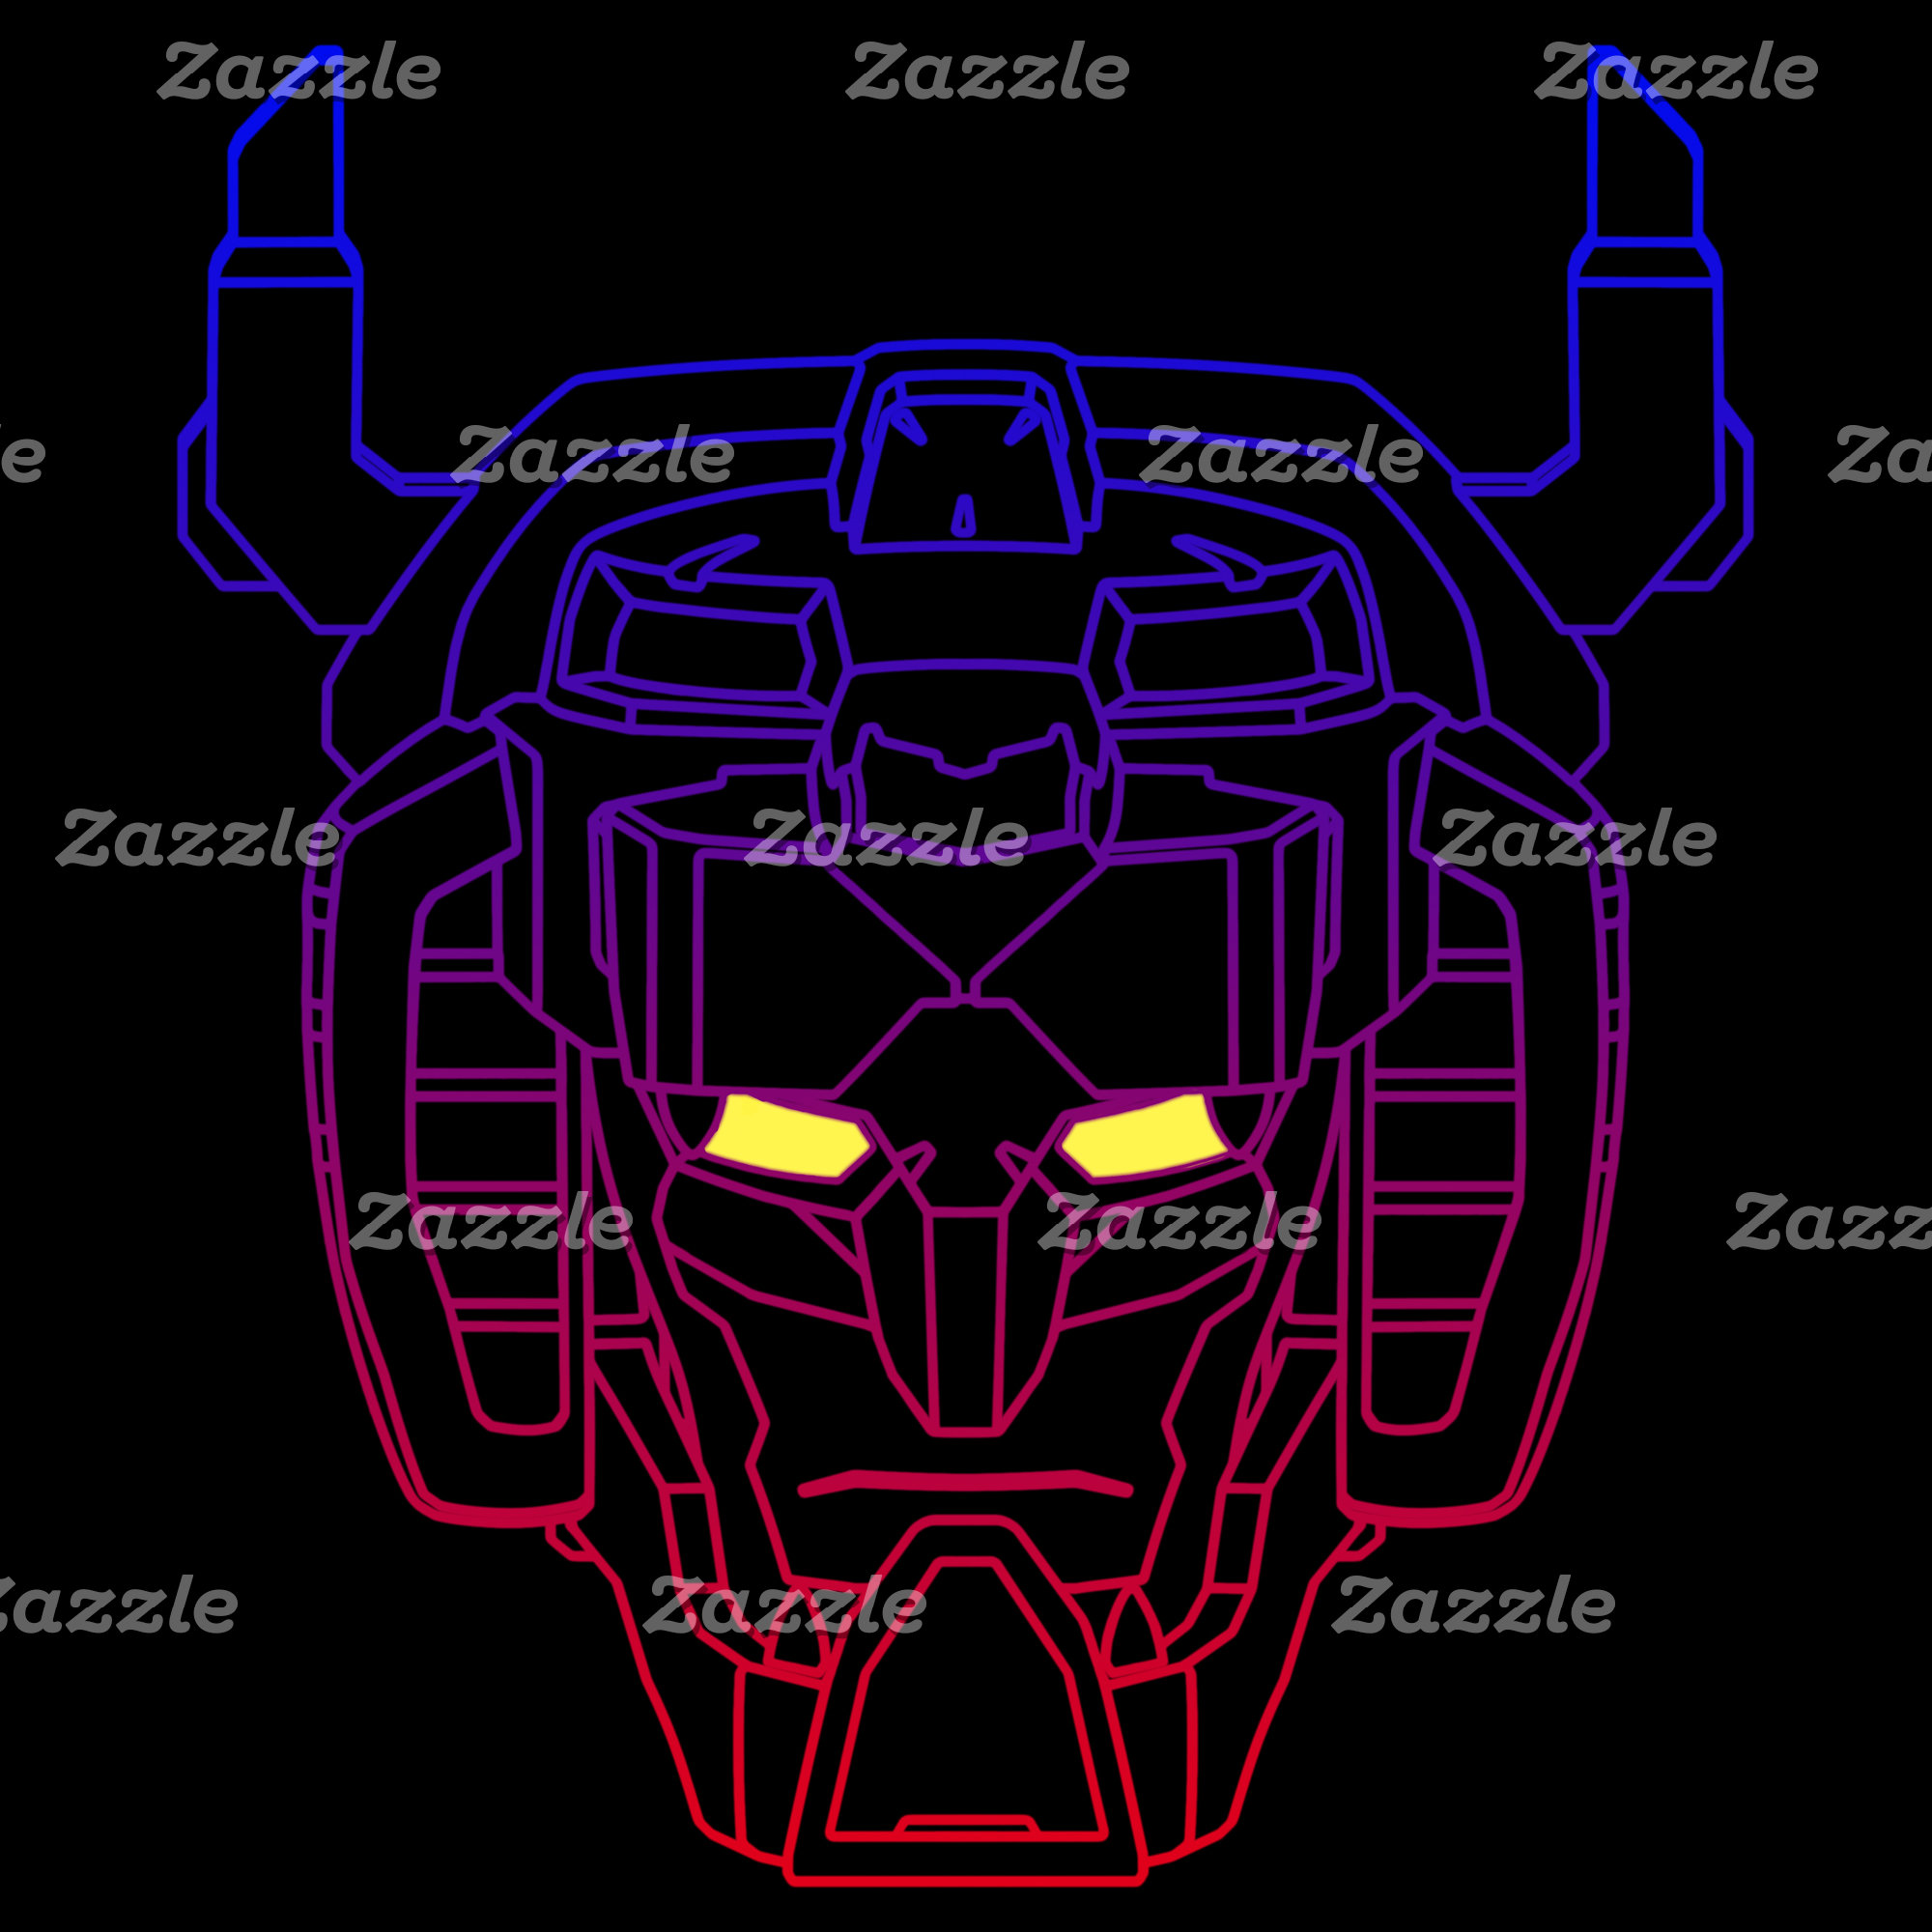 Voltron | Blue-Red Gradient Head Outline